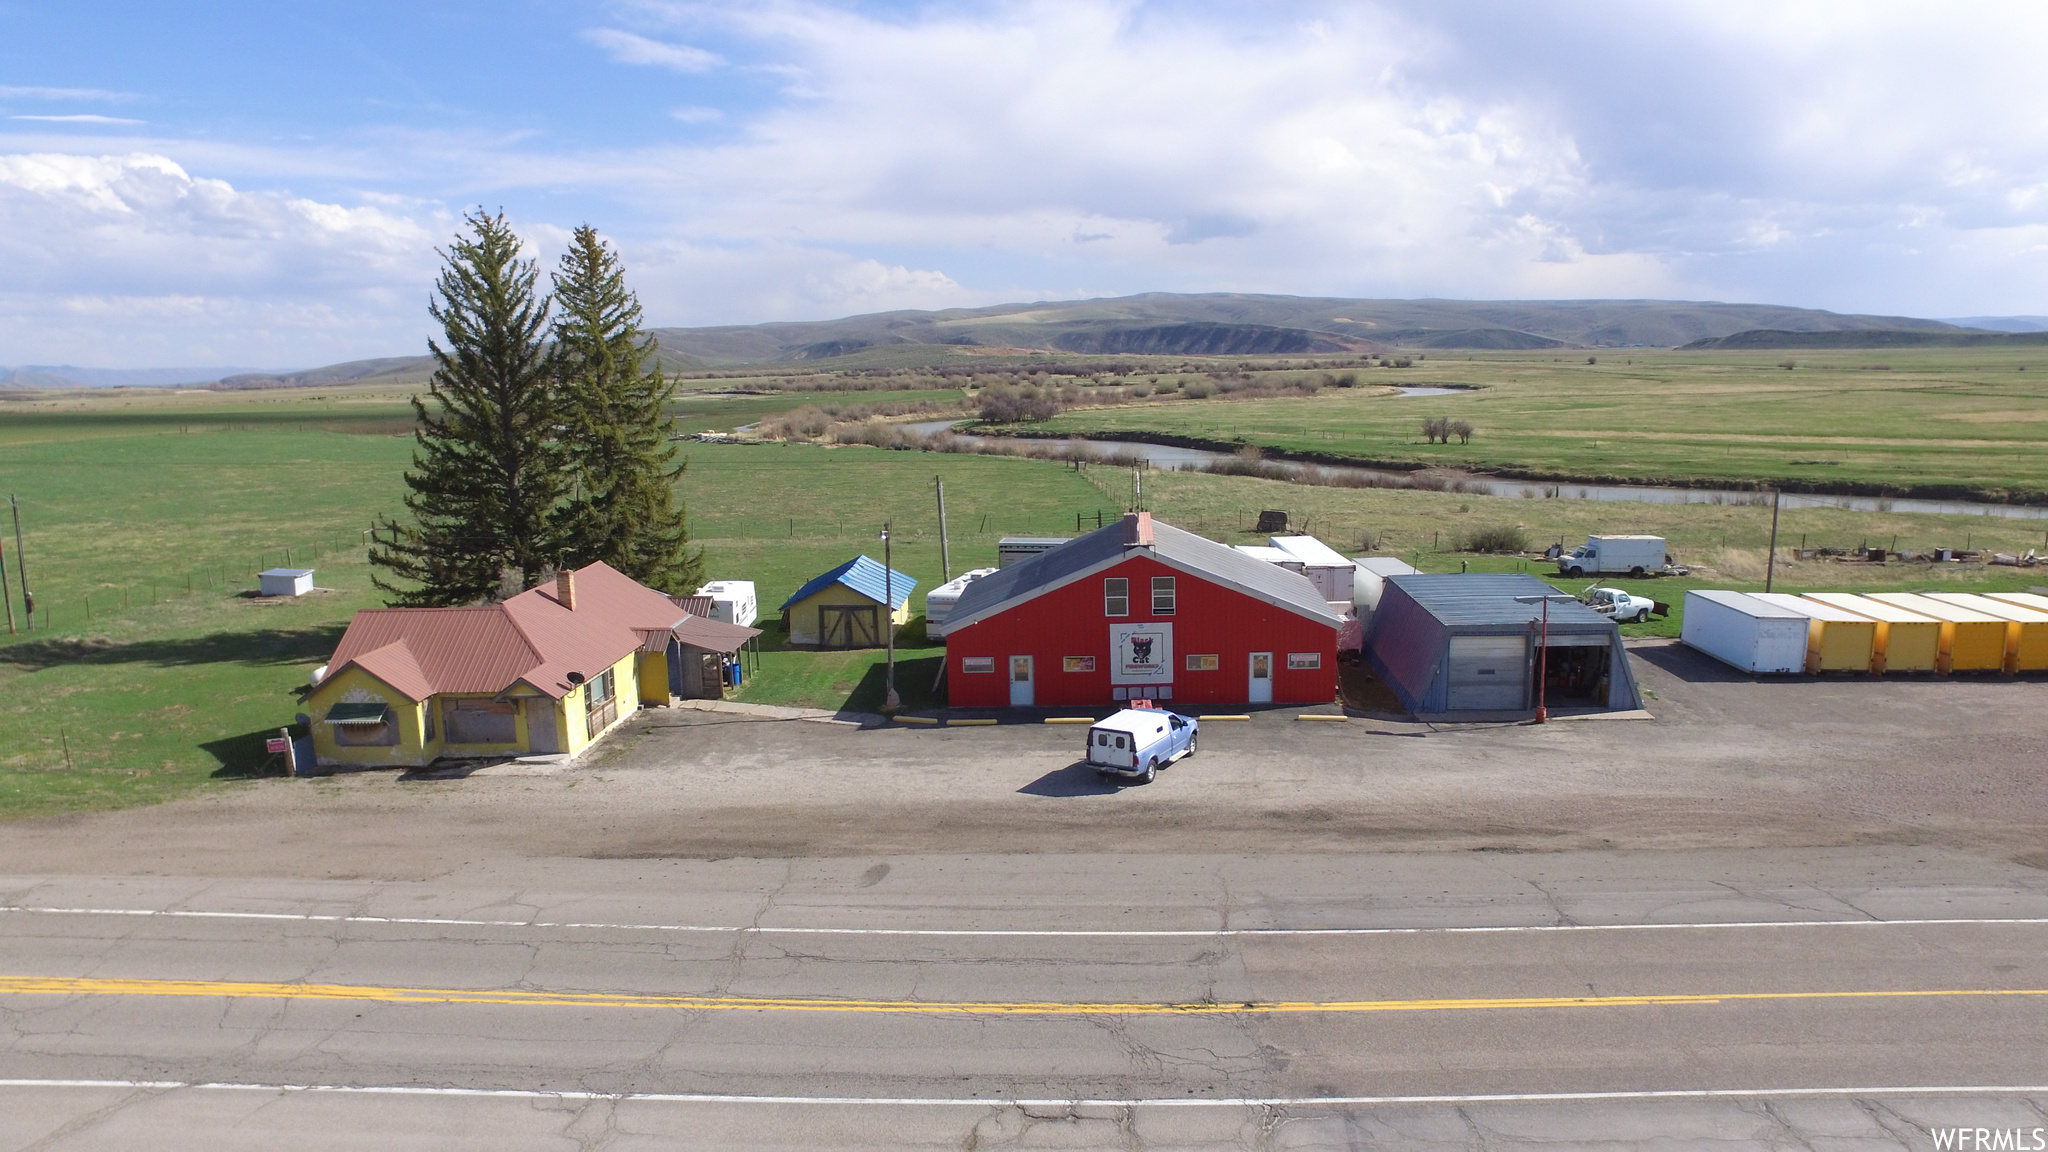 primary photo for 30 HWY 30, Cokeville, WY 83114, US